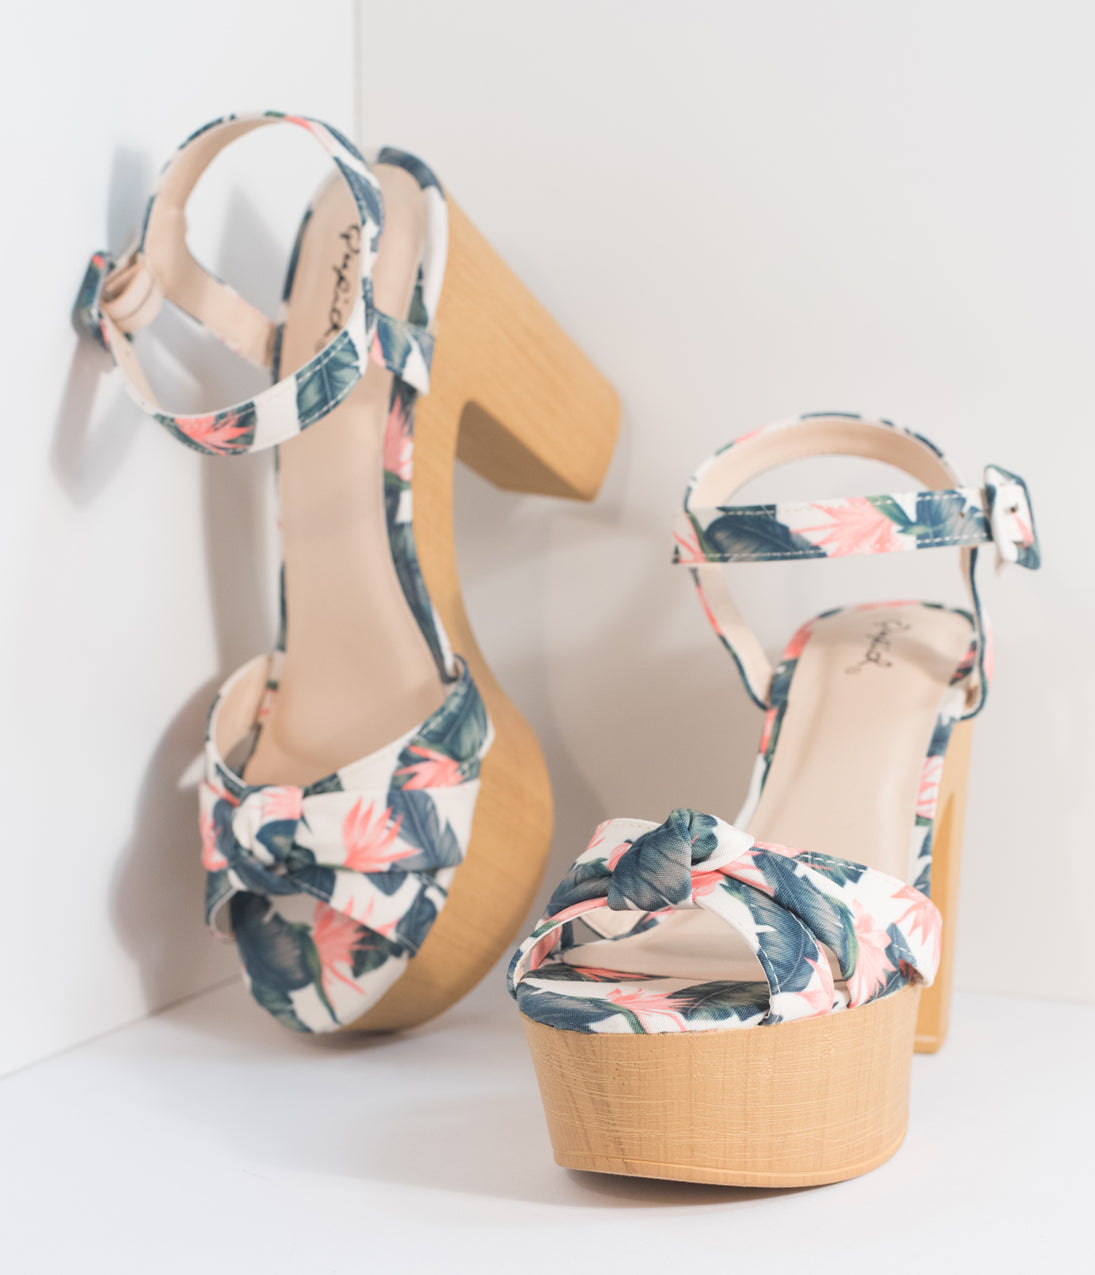 1950s Style Shoes Retro Style Green  Coral Tropical Print Platform Heels $42.00 AT vintagedancer.com